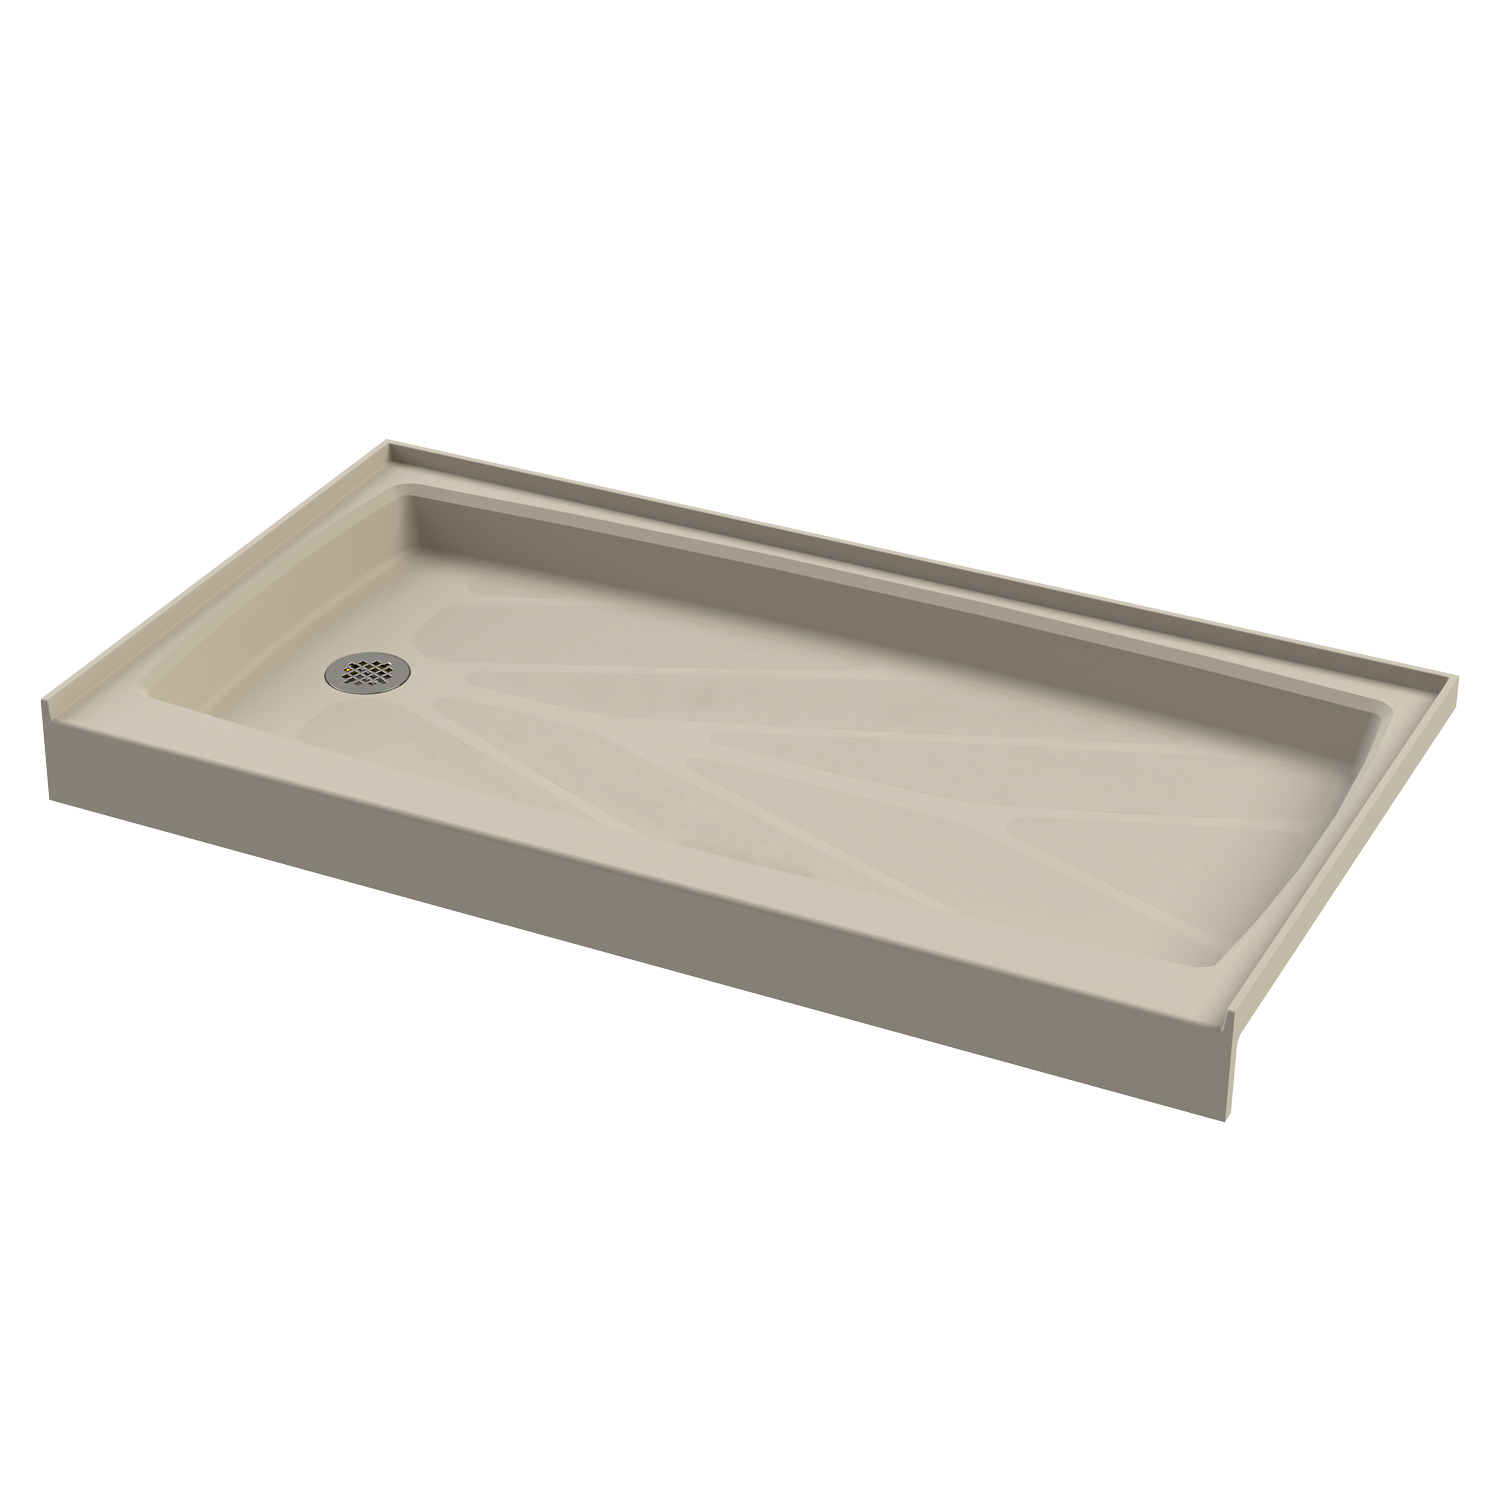 Tub replacement shower base